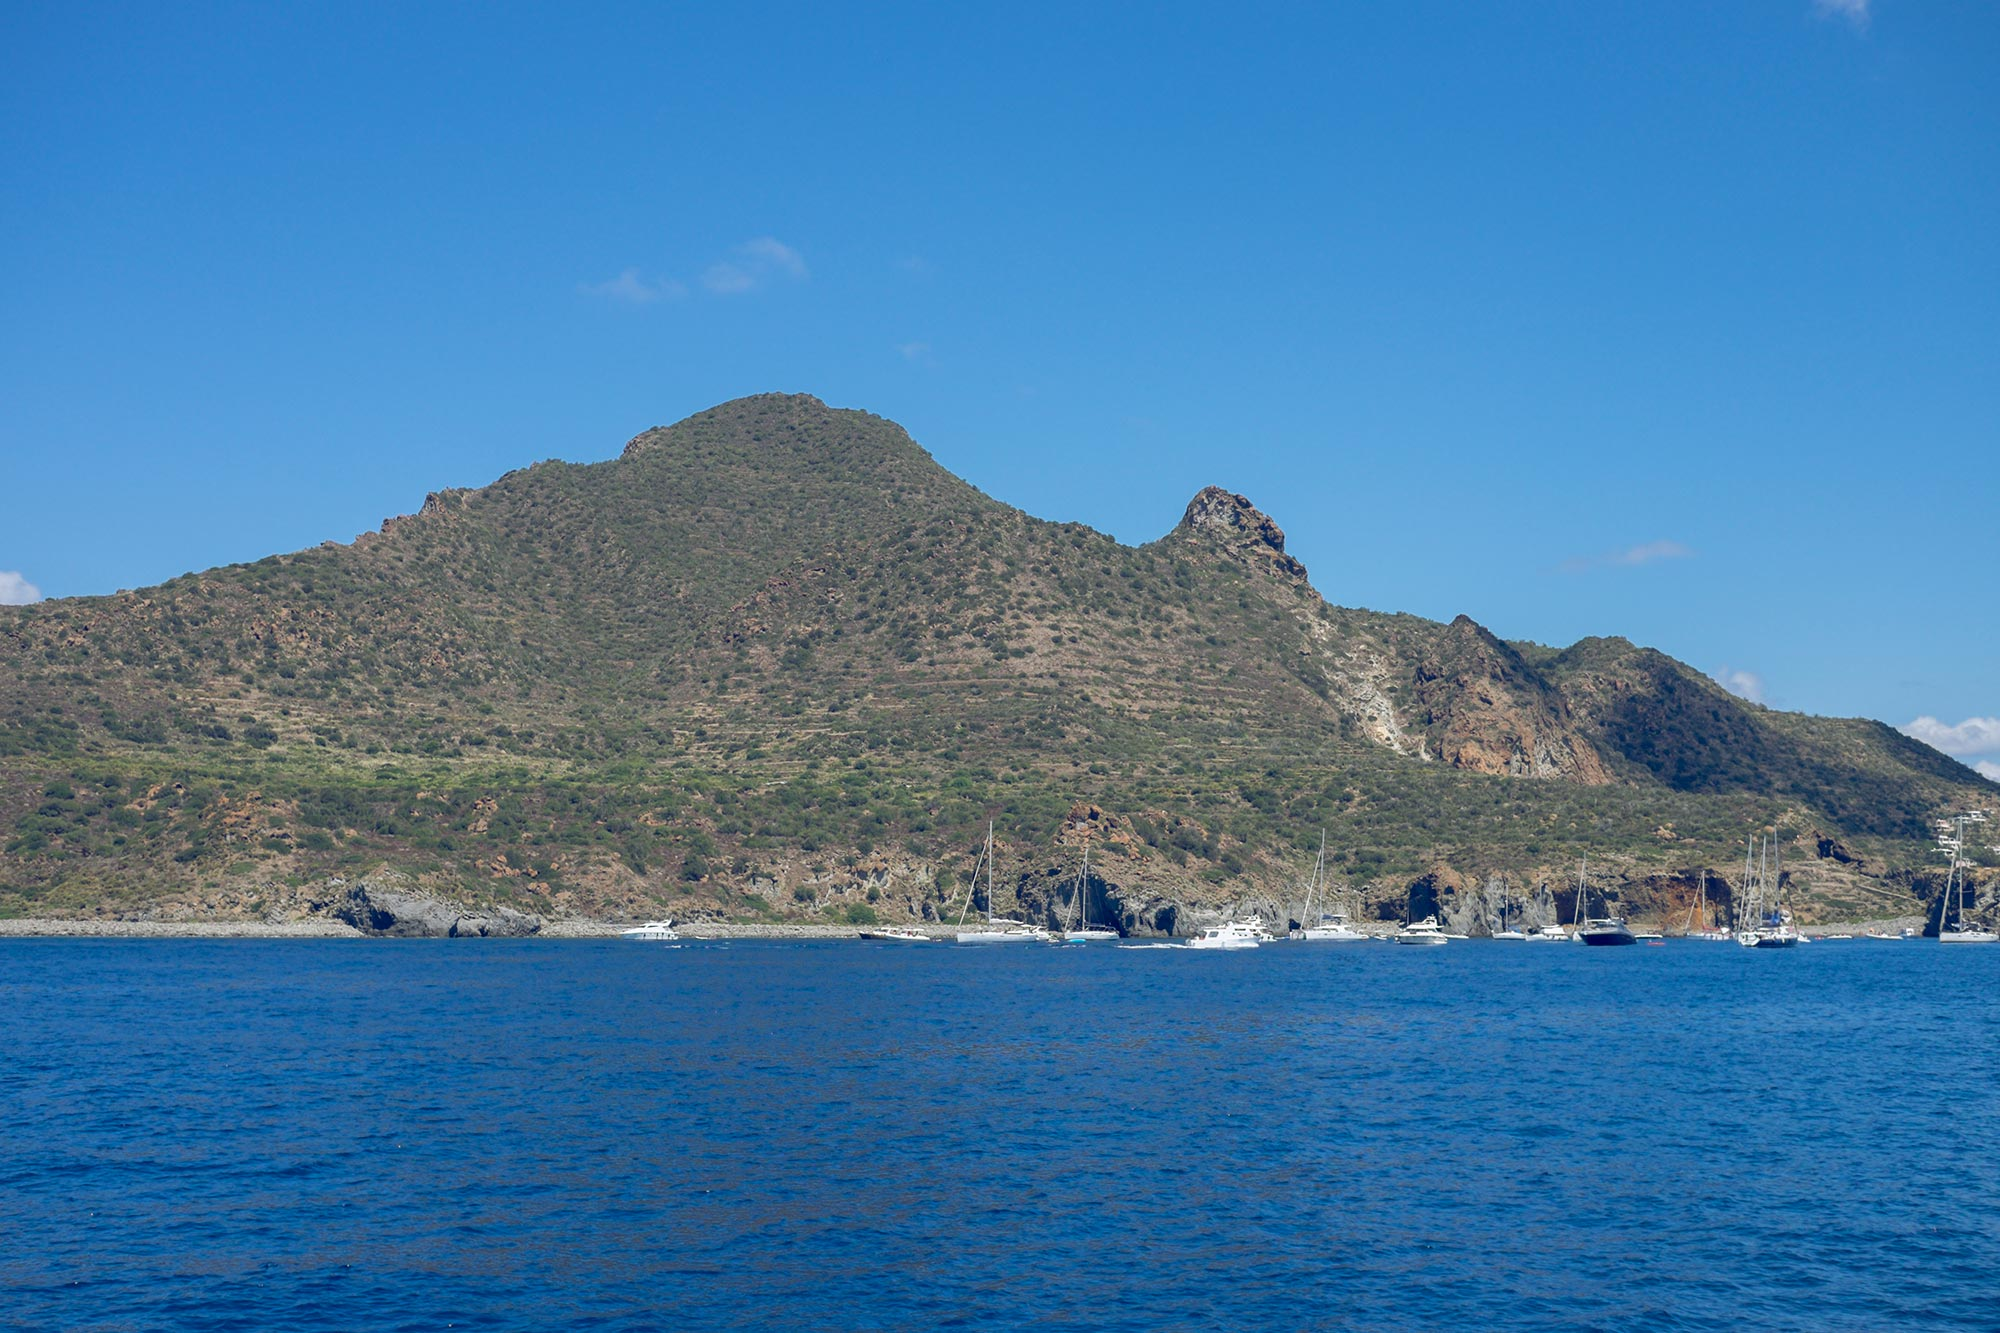 italy-sicilia-eolie-panarea-from-sea